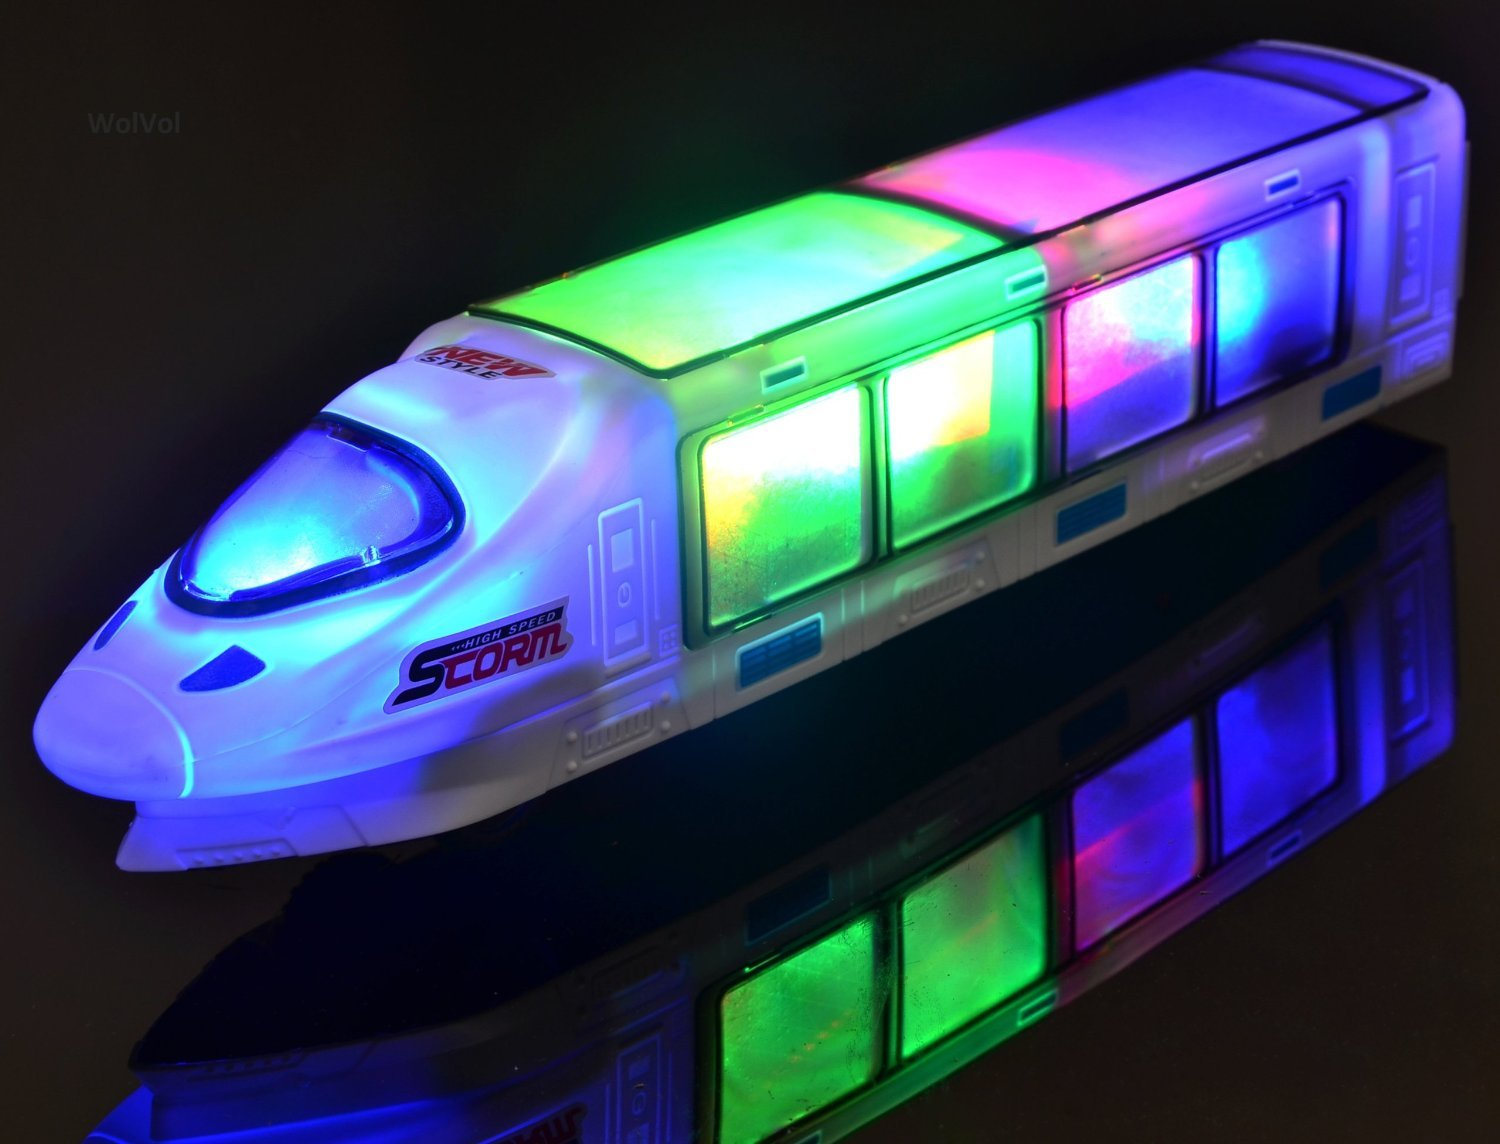 WolVol (New Version Beautiful 3D Lightning Electric Train Toy for Kids with Music, goes Around and Changes Directions on Contact